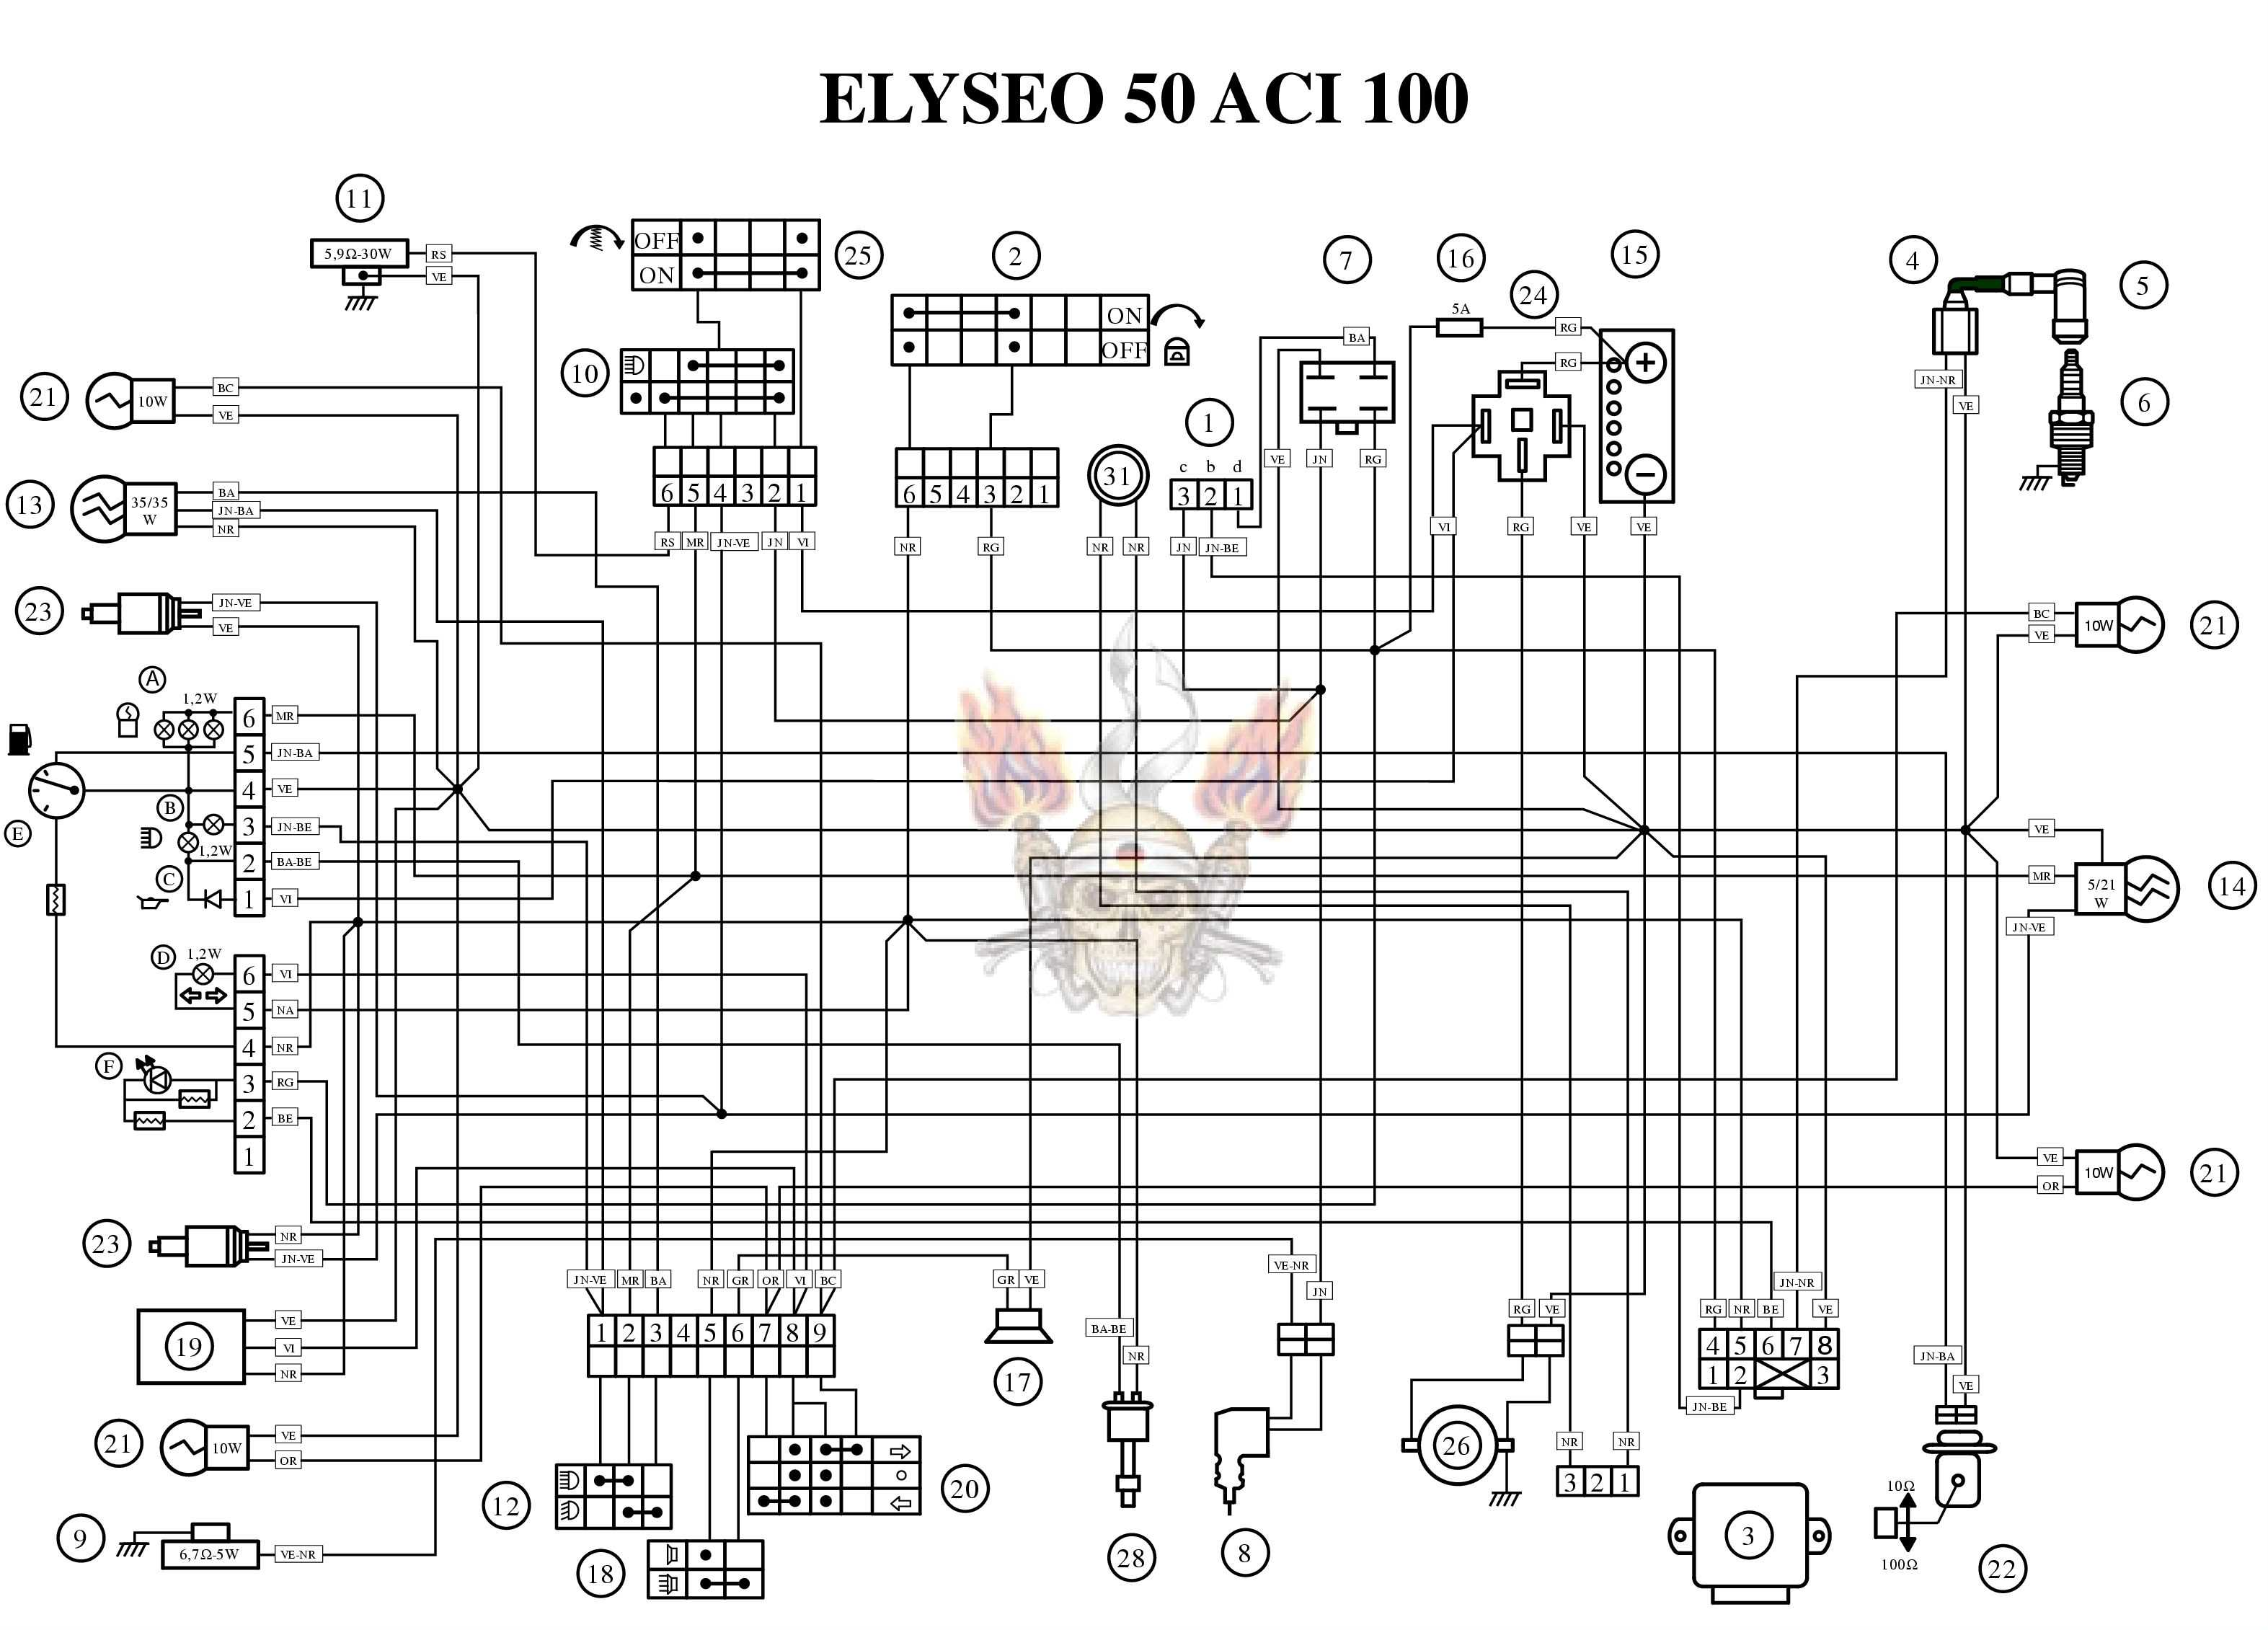 Wiring Diagram Peugeot ELYSEO 50 ACI 100 peugeot 307 wiring diagram efcaviation com peugeot 307 wiring diagram download at reclaimingppi.co